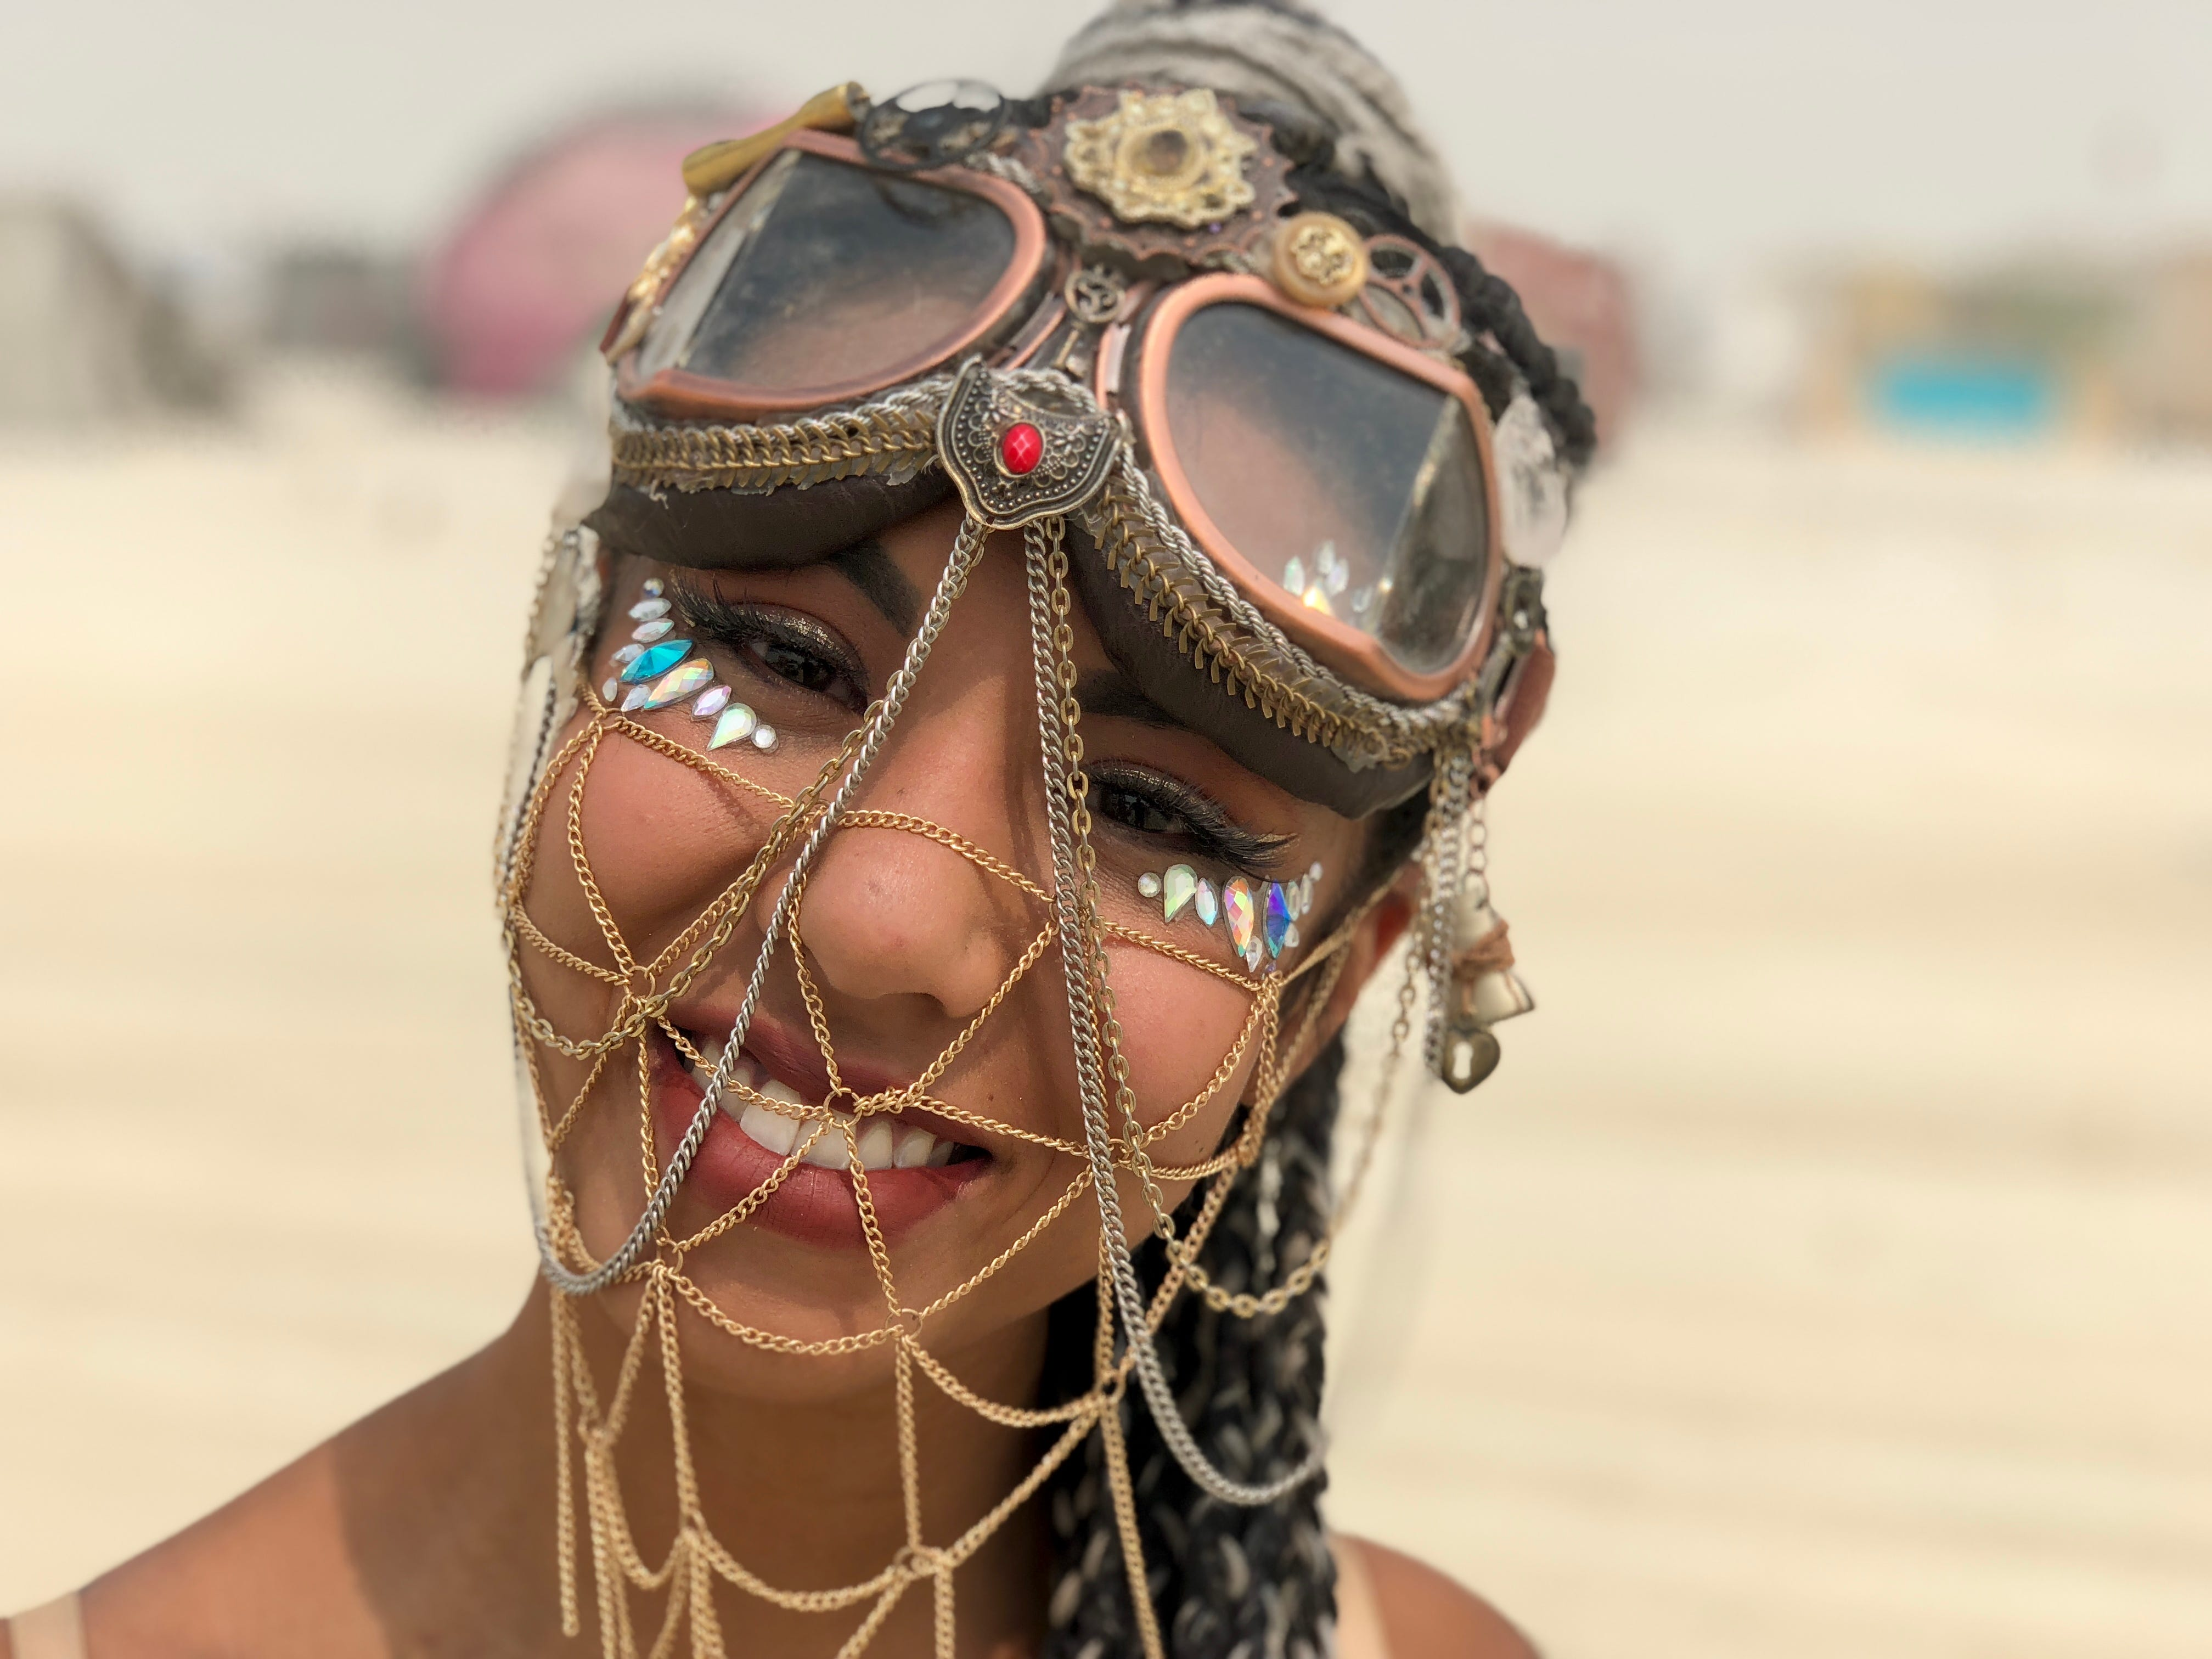 Janet Ha of Austin, Texas, shows off her outfit at Burning Man during a pause between dust storms.